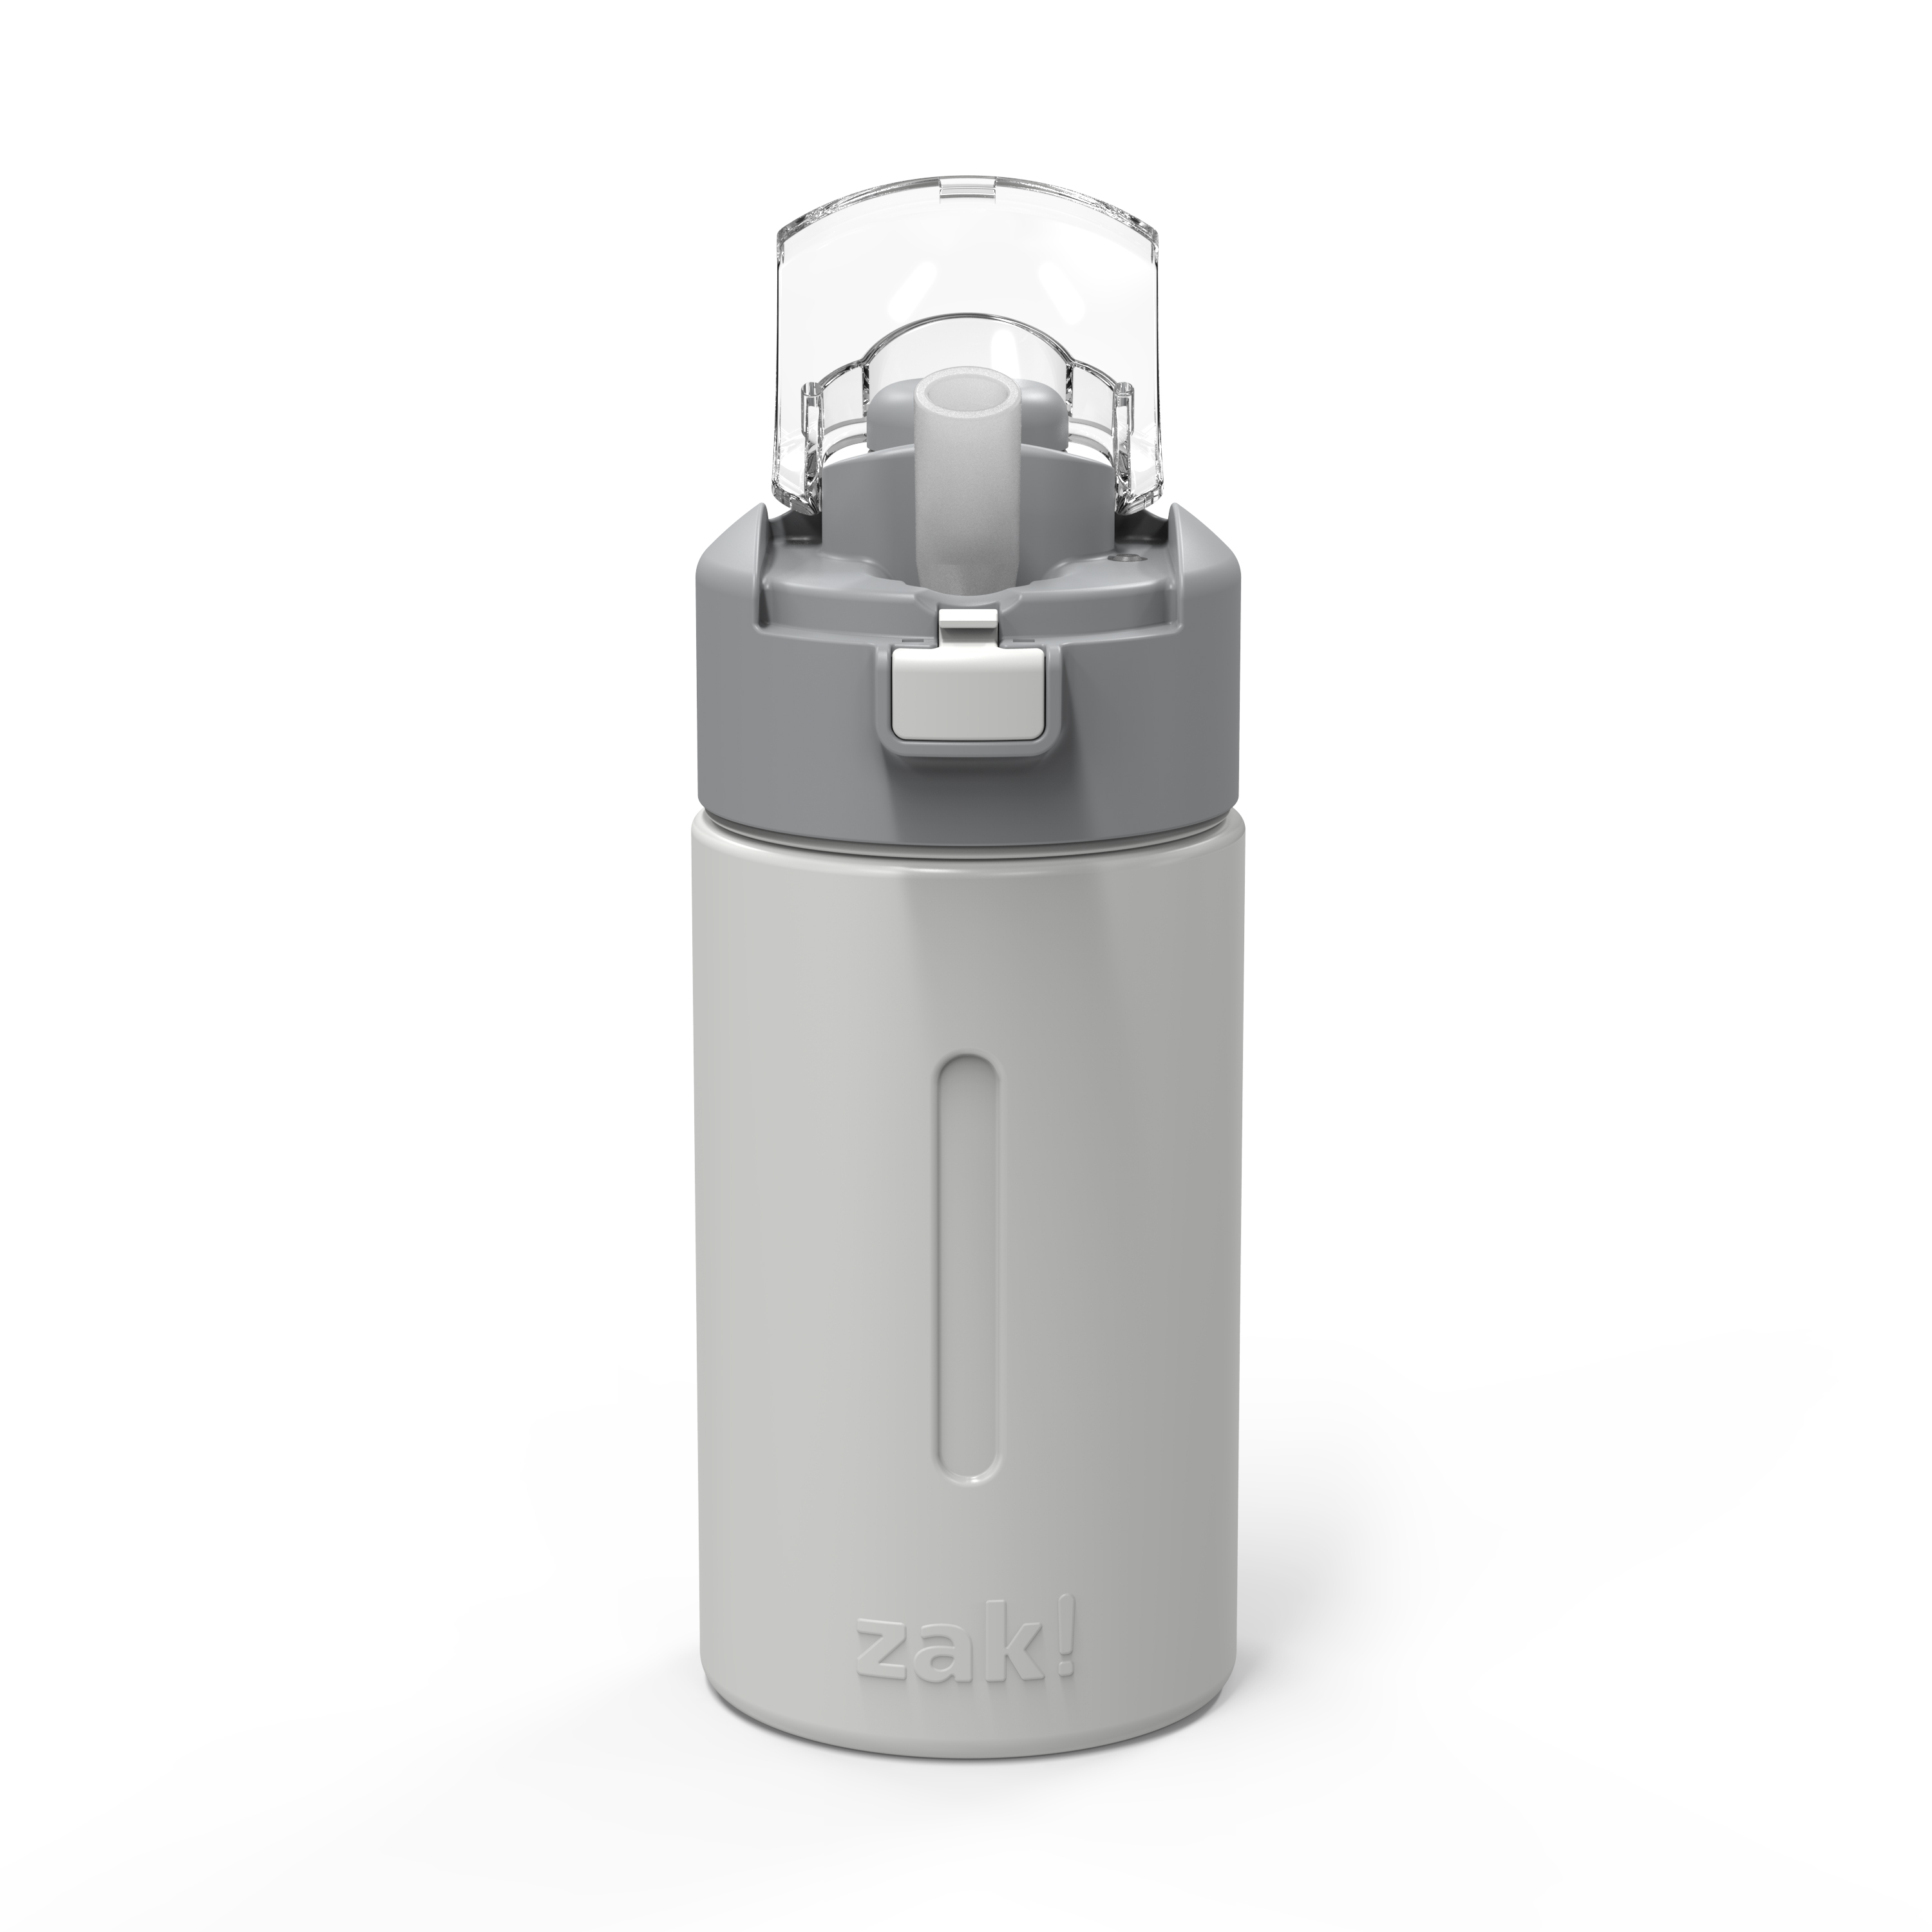 Genesis 12 ounce Vacuum Insulated Stainless Steel Tumbler, Gray slideshow image 5